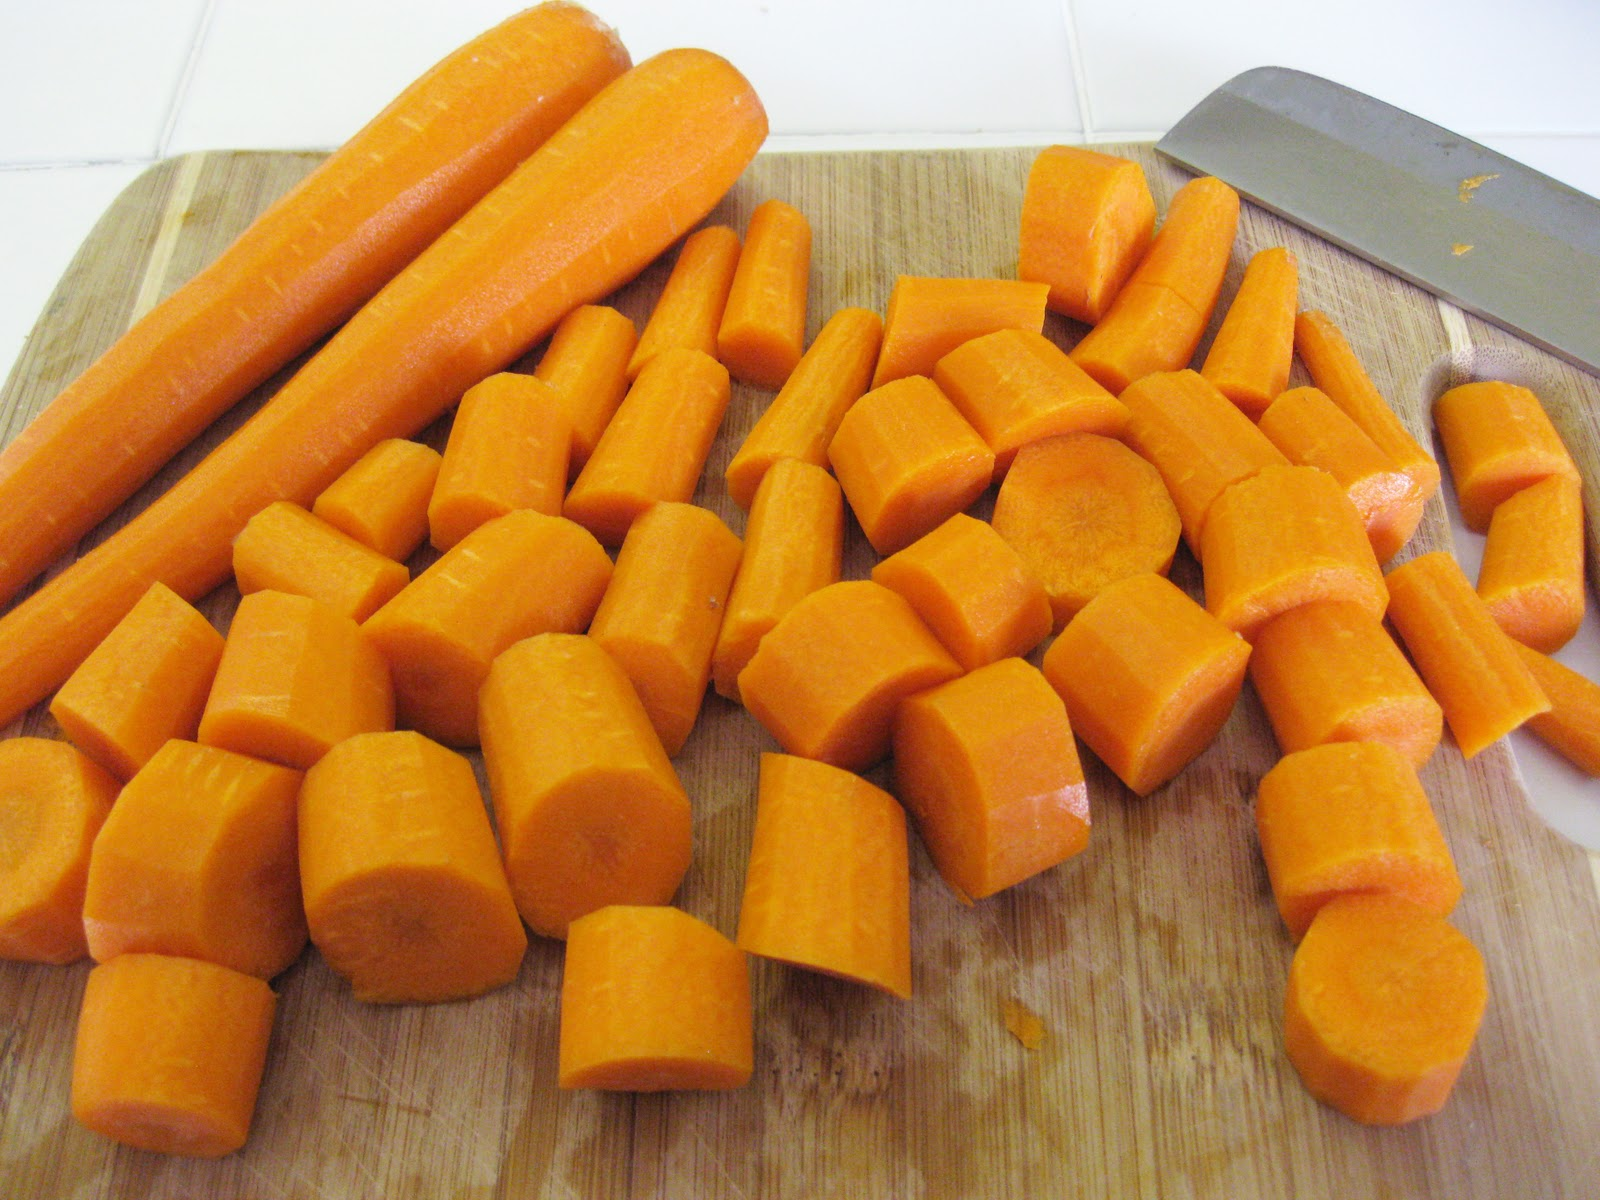 chopped carrots - photo #27